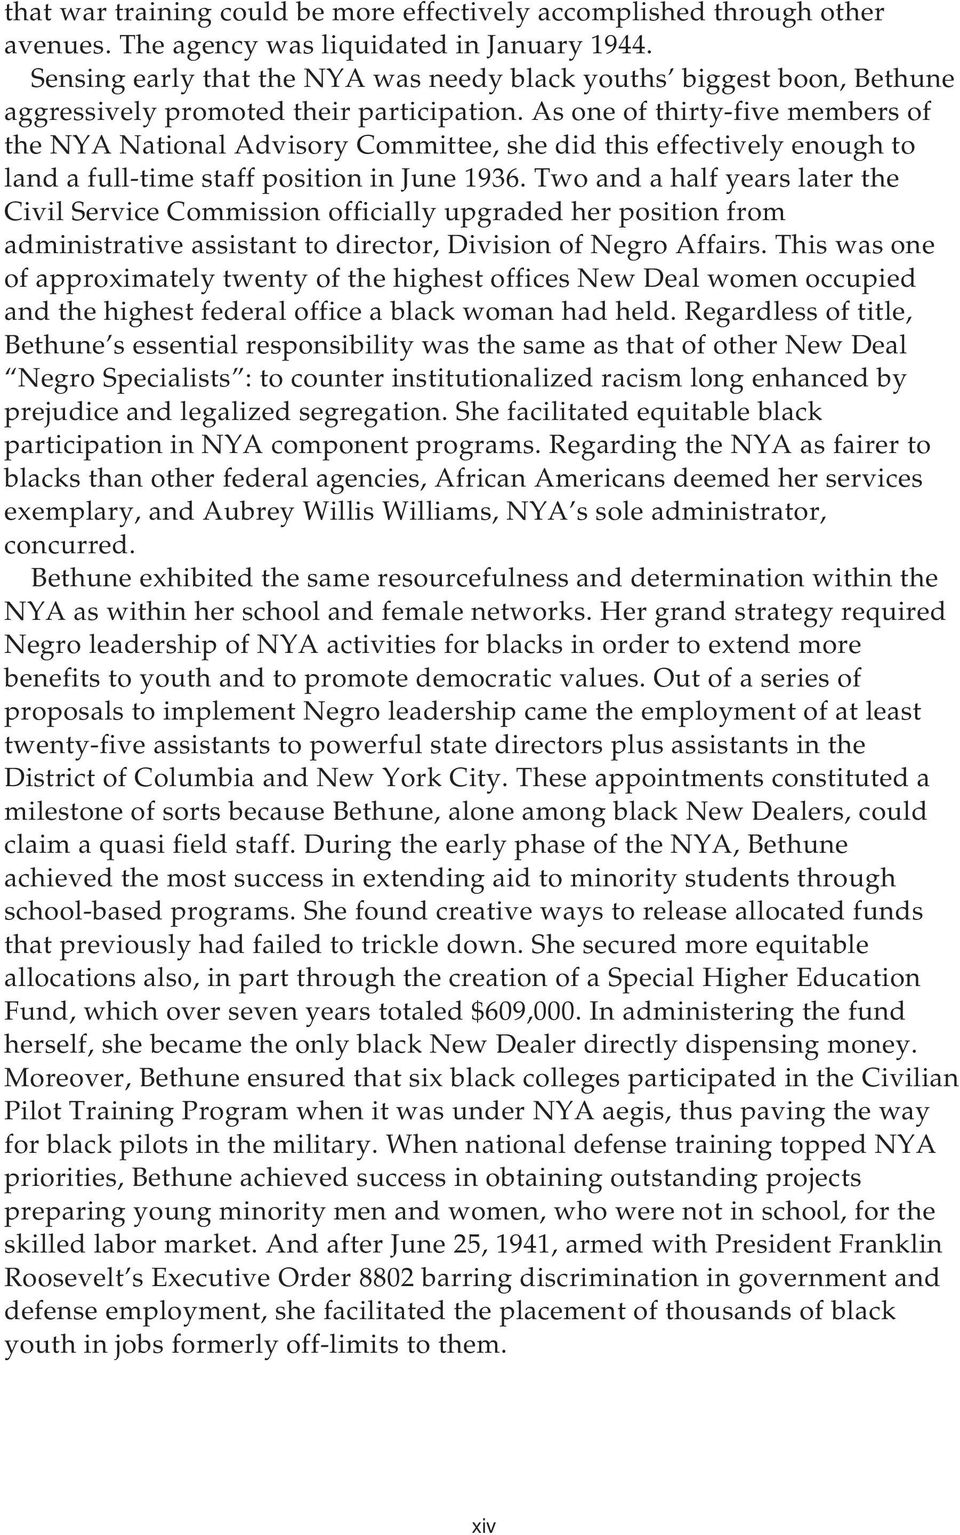 As one of thirty-five members of the NYA National Advisory Committee, she did this effectively enough to land a full-time staff position in June 1936.